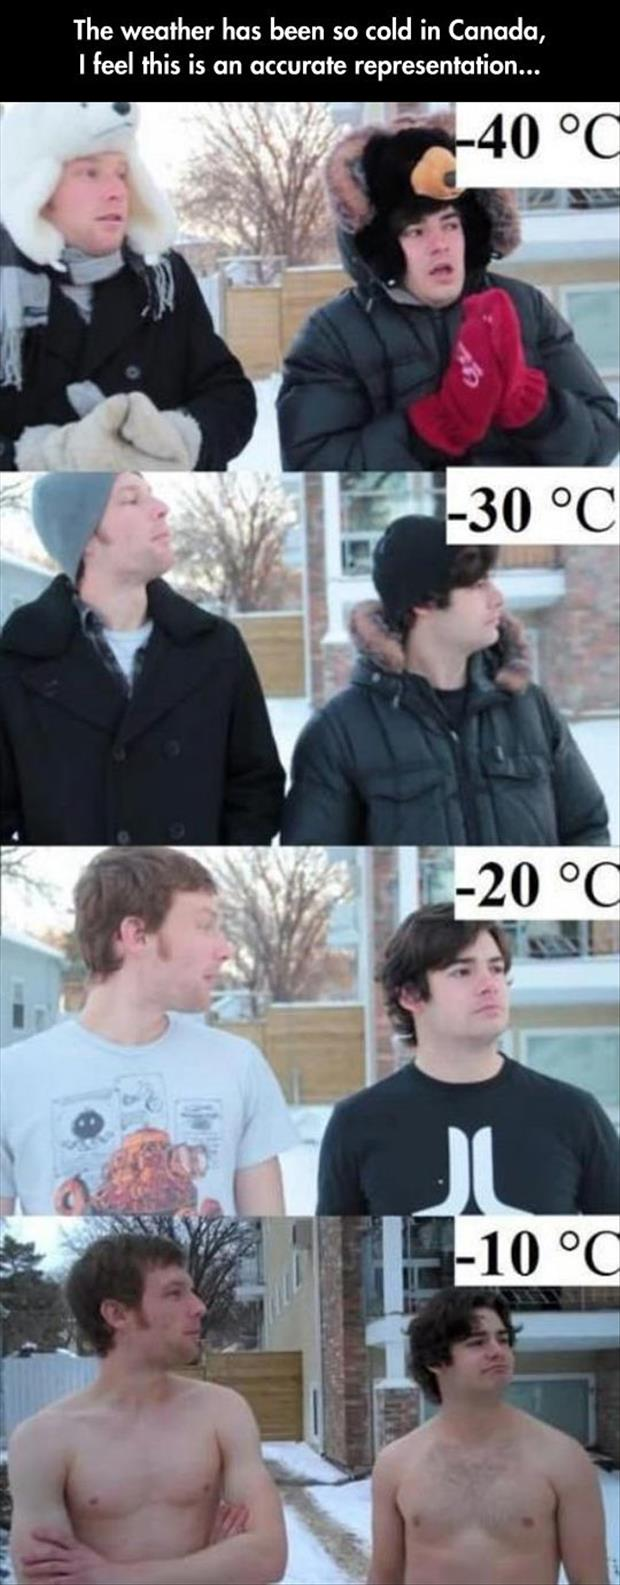 cold weather in canada